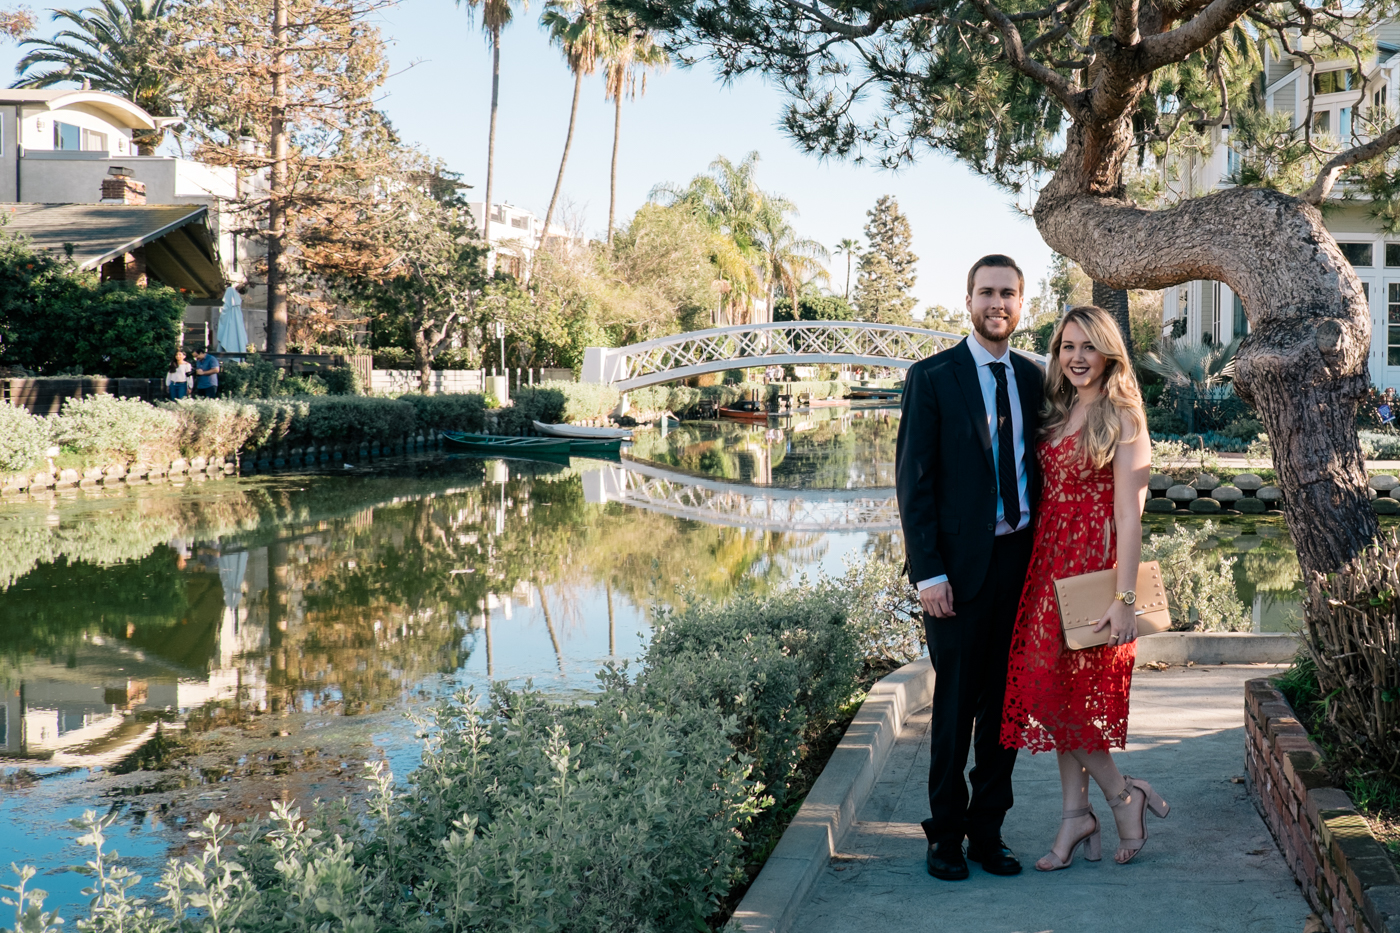 Benjamin and Debora Dahl at the Venice Canals in Los Angeles for Valentine's Day